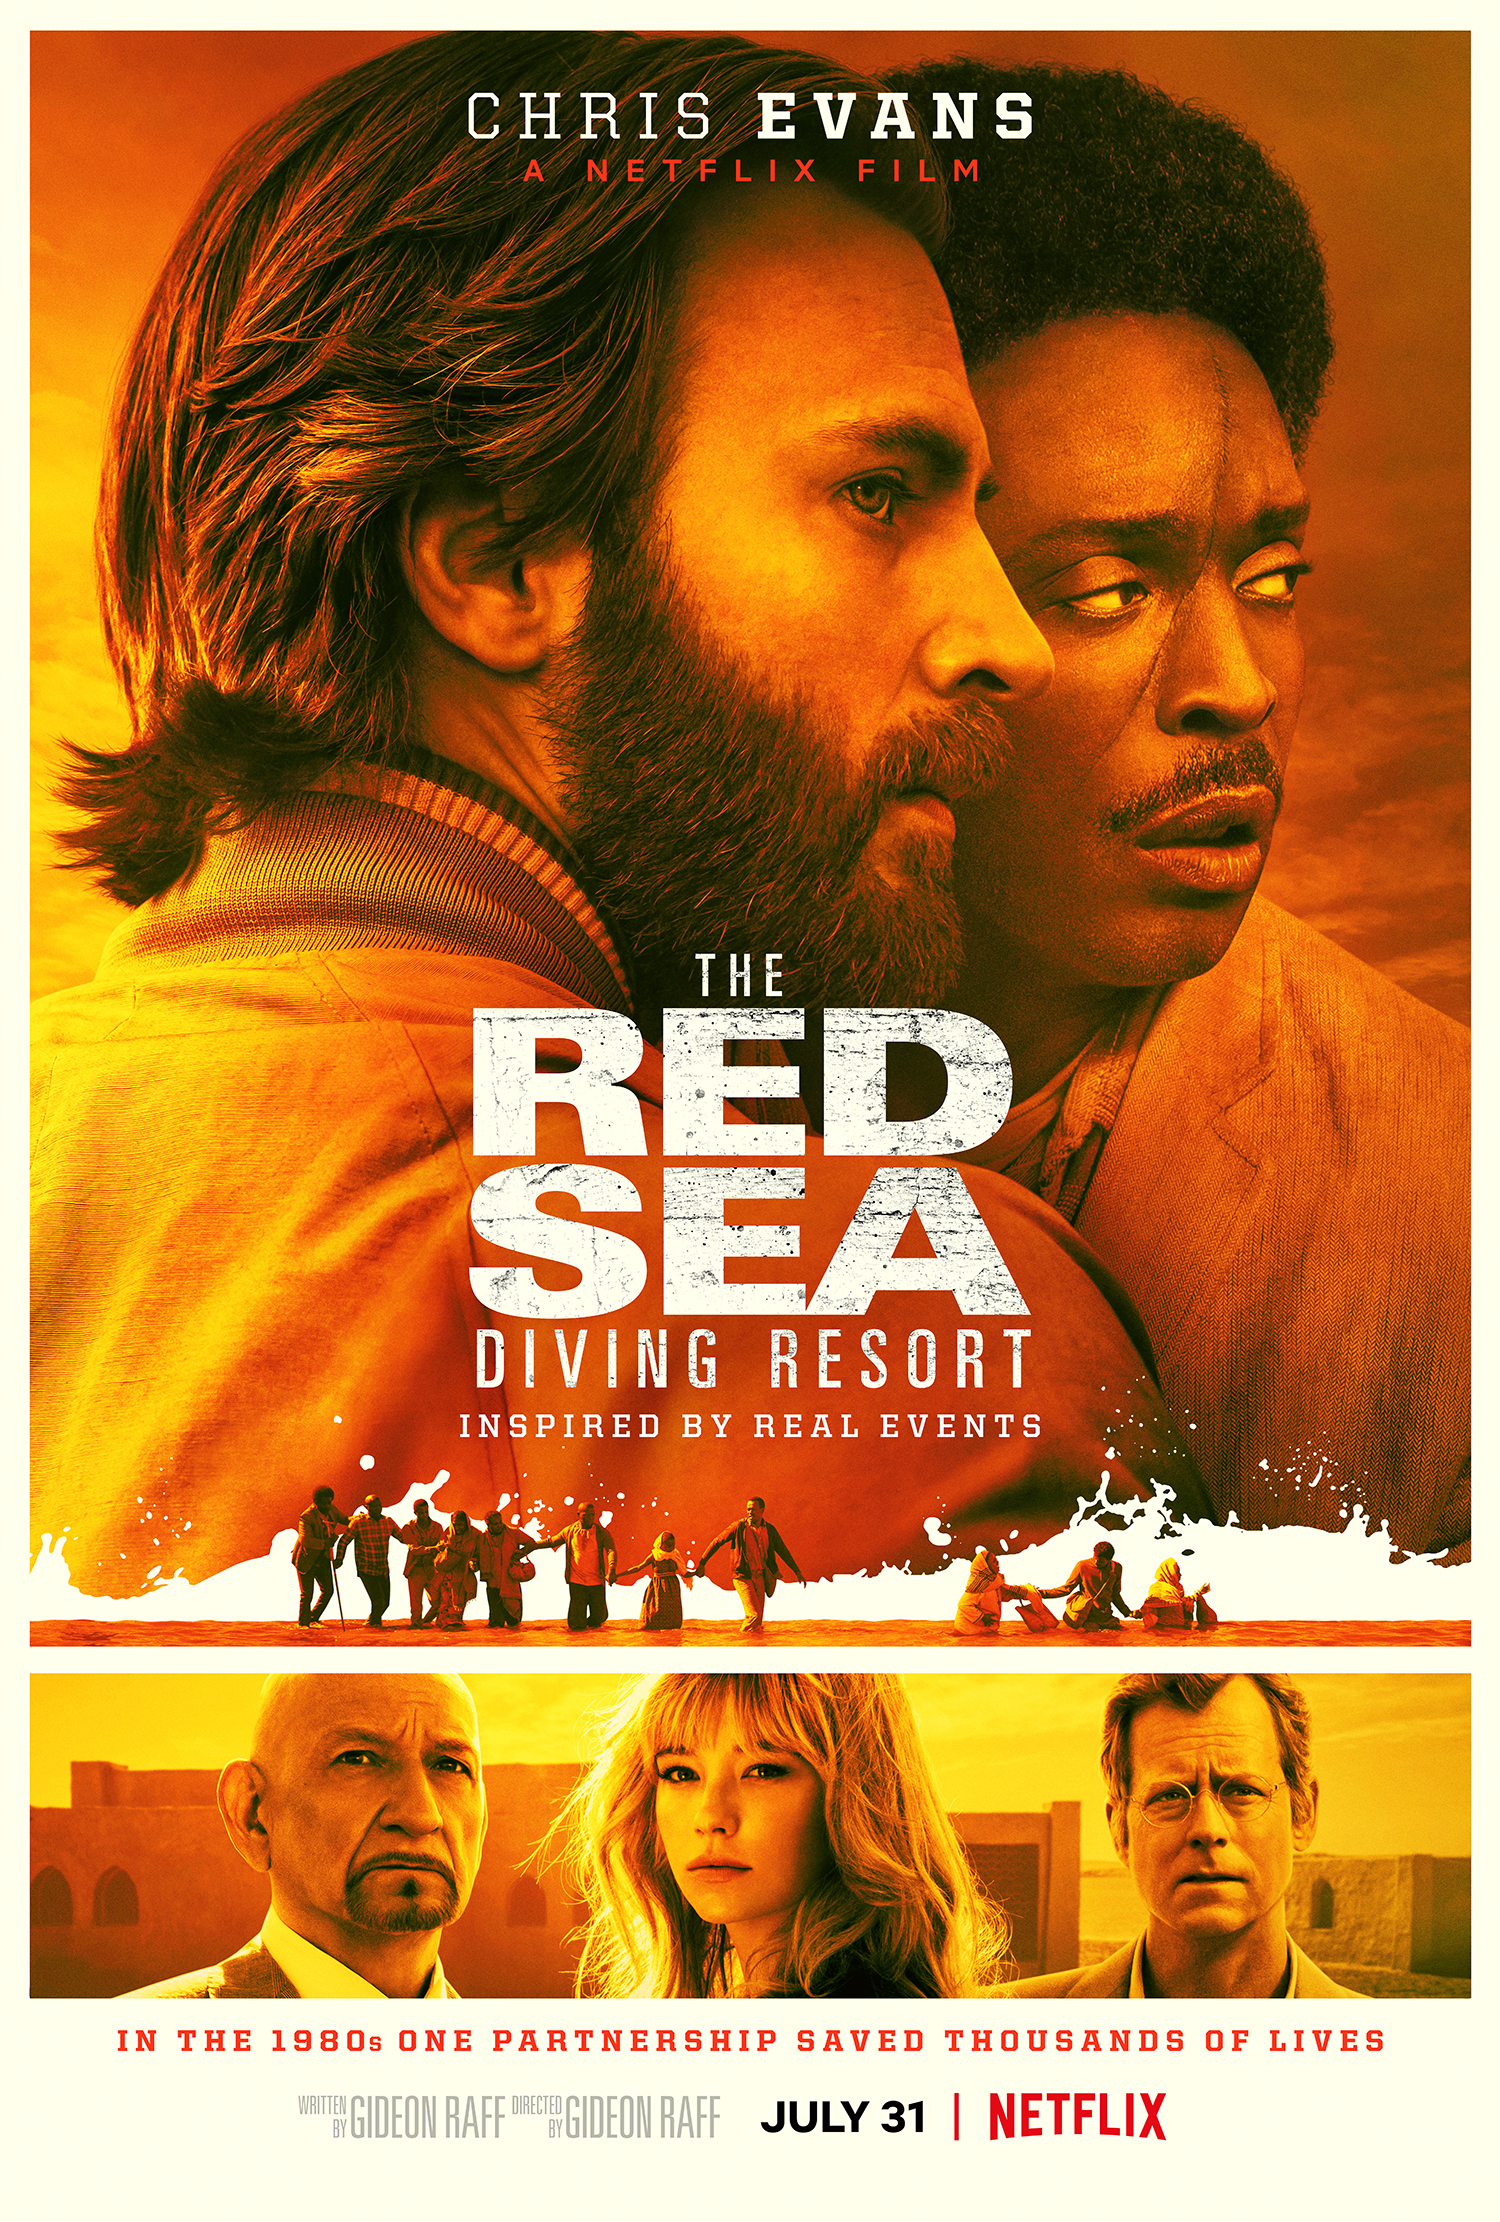 Raudonosios jūros nardymo kurortas (2019) / The Red Sea Diving Resort (2019)